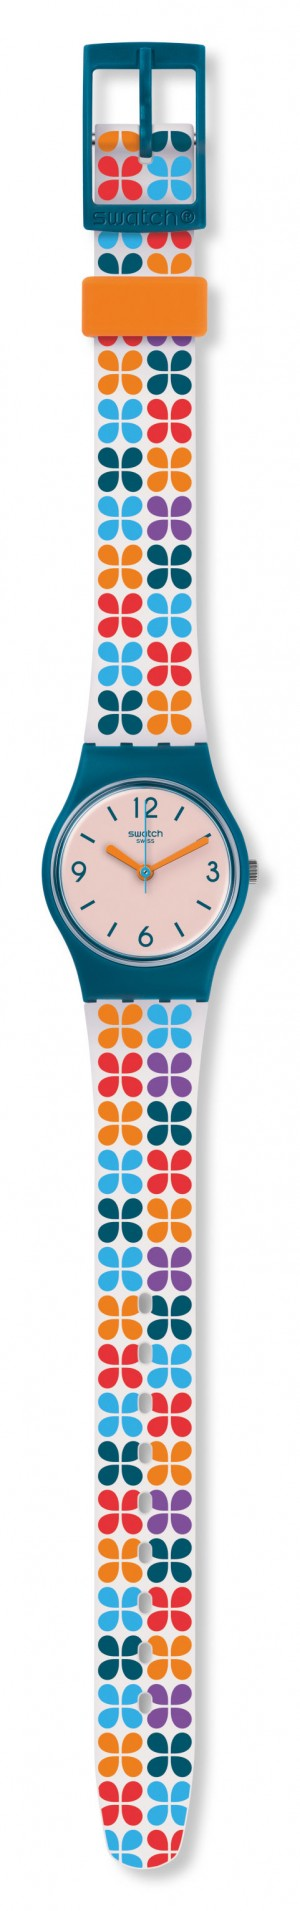 Swatch Paseo De Gracia LN151